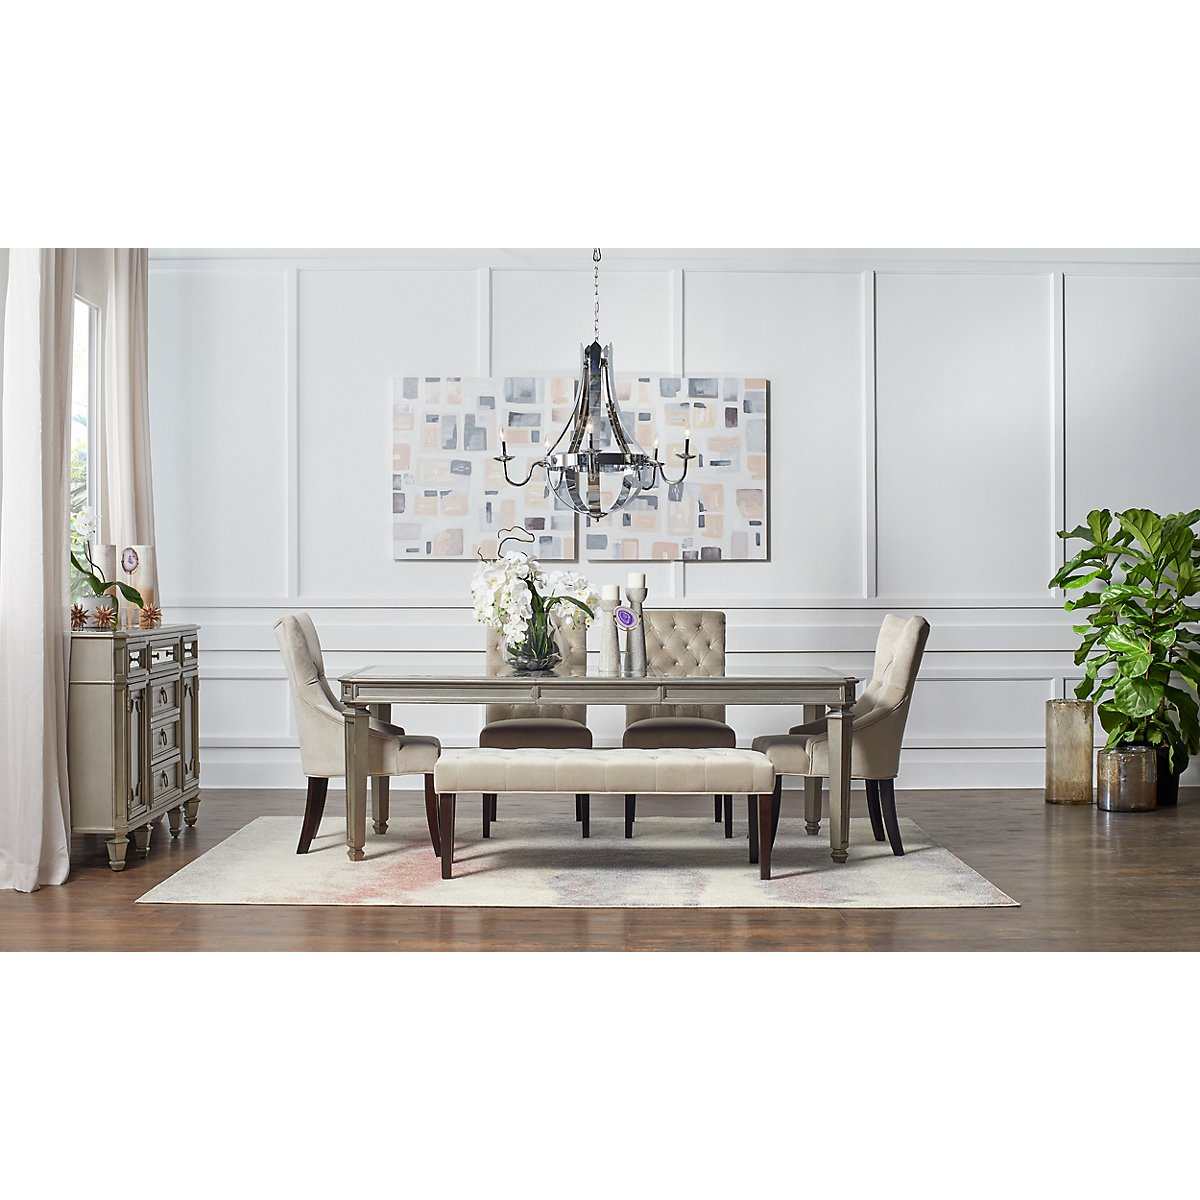 Sloane Light Beige Rect Table, 4 Chairs & Bench | Dining Room ...